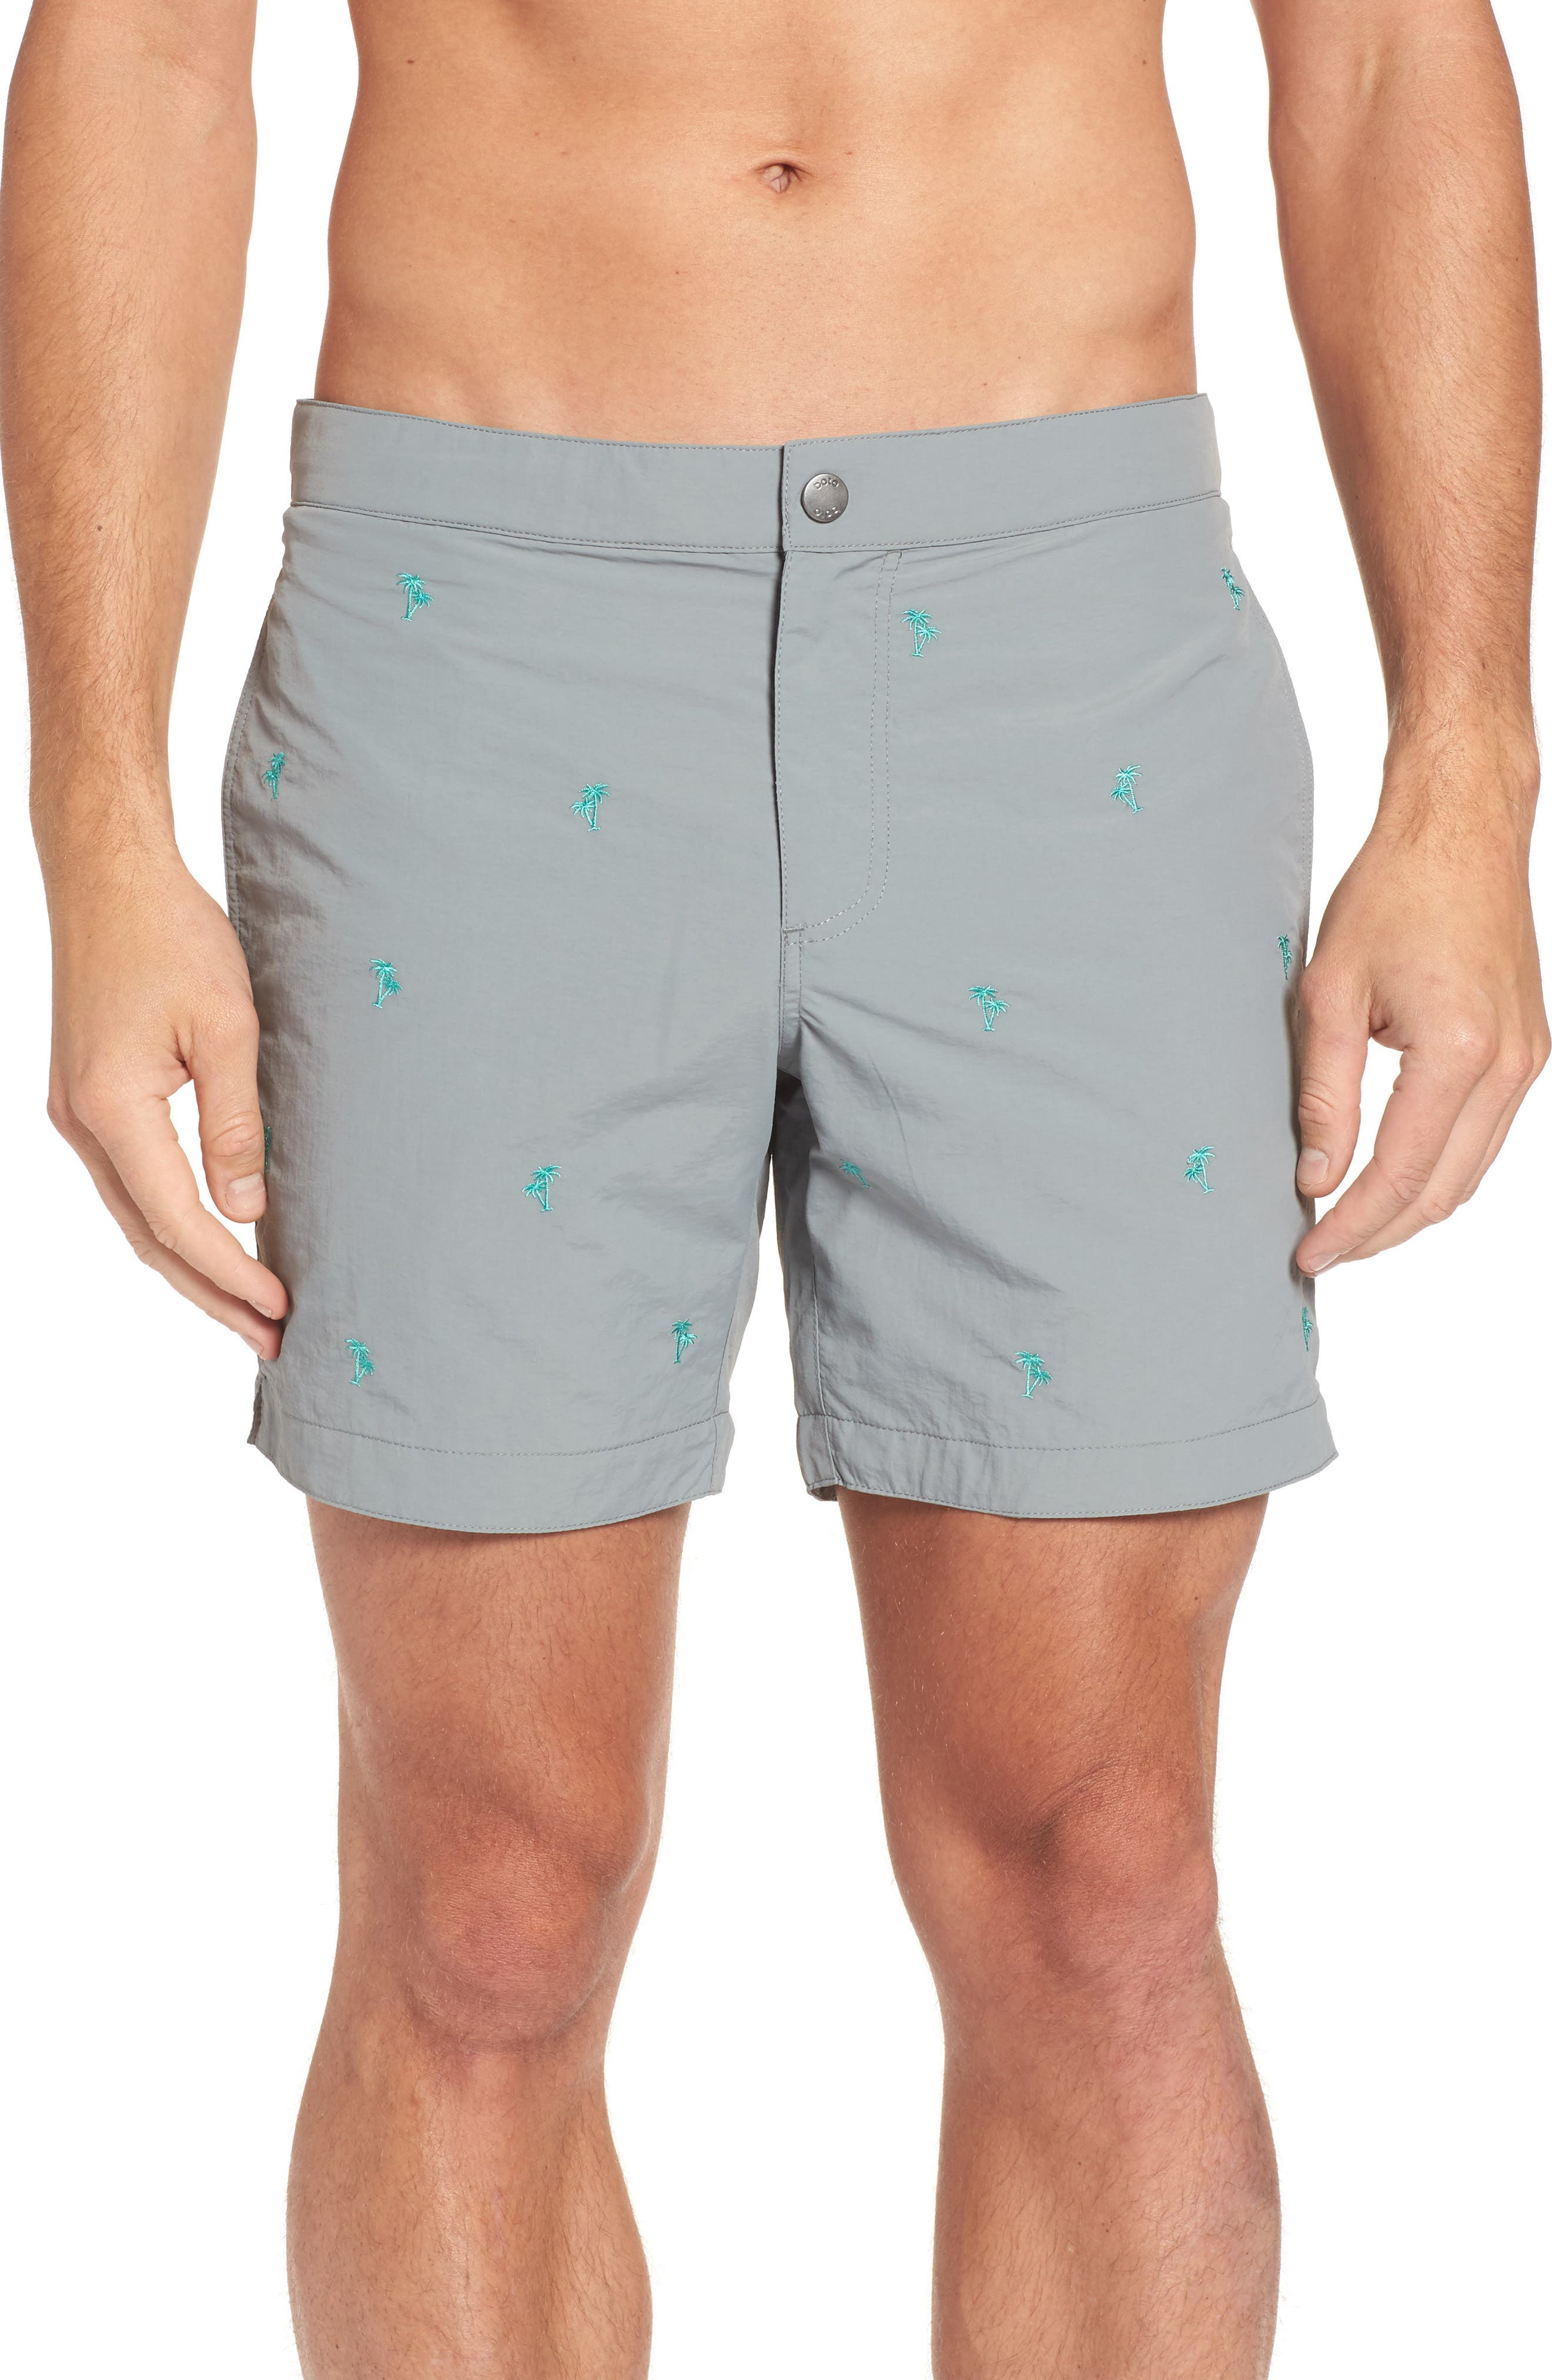 Aruba Tailored Fit Embroidered Palm Swim Trunks,                             Main thumbnail 1, color,                             031